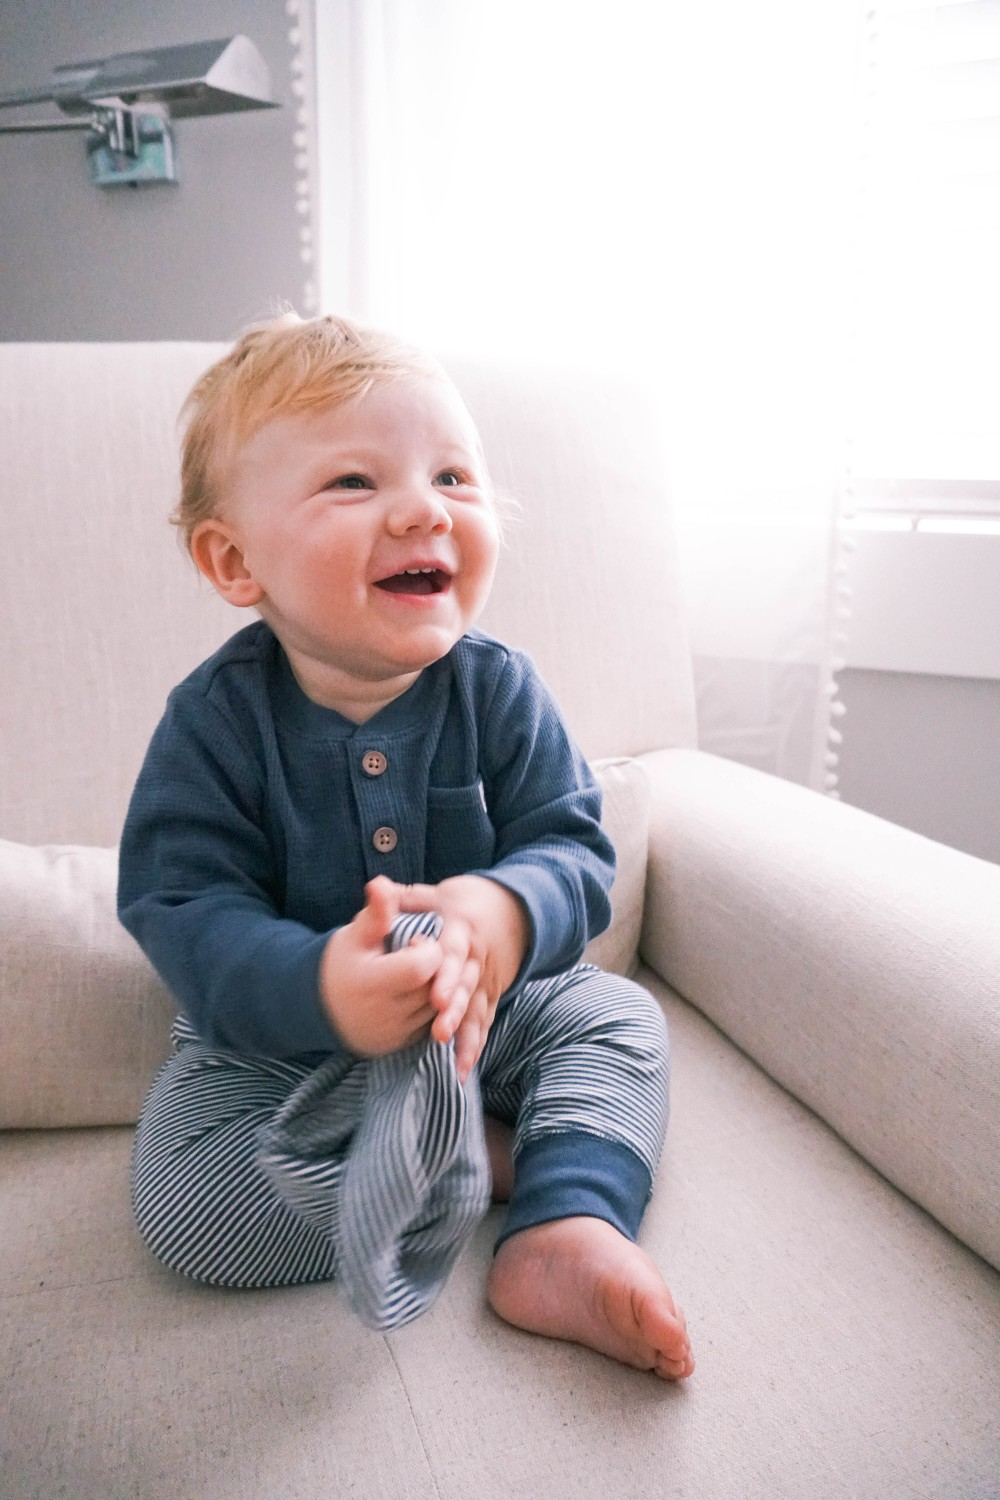 Carter's Baby-JCPenney-Baby Boy Clothes Under $30-Fall Fashion for Baby-Baby Clothing Sale-Have Need Want 8